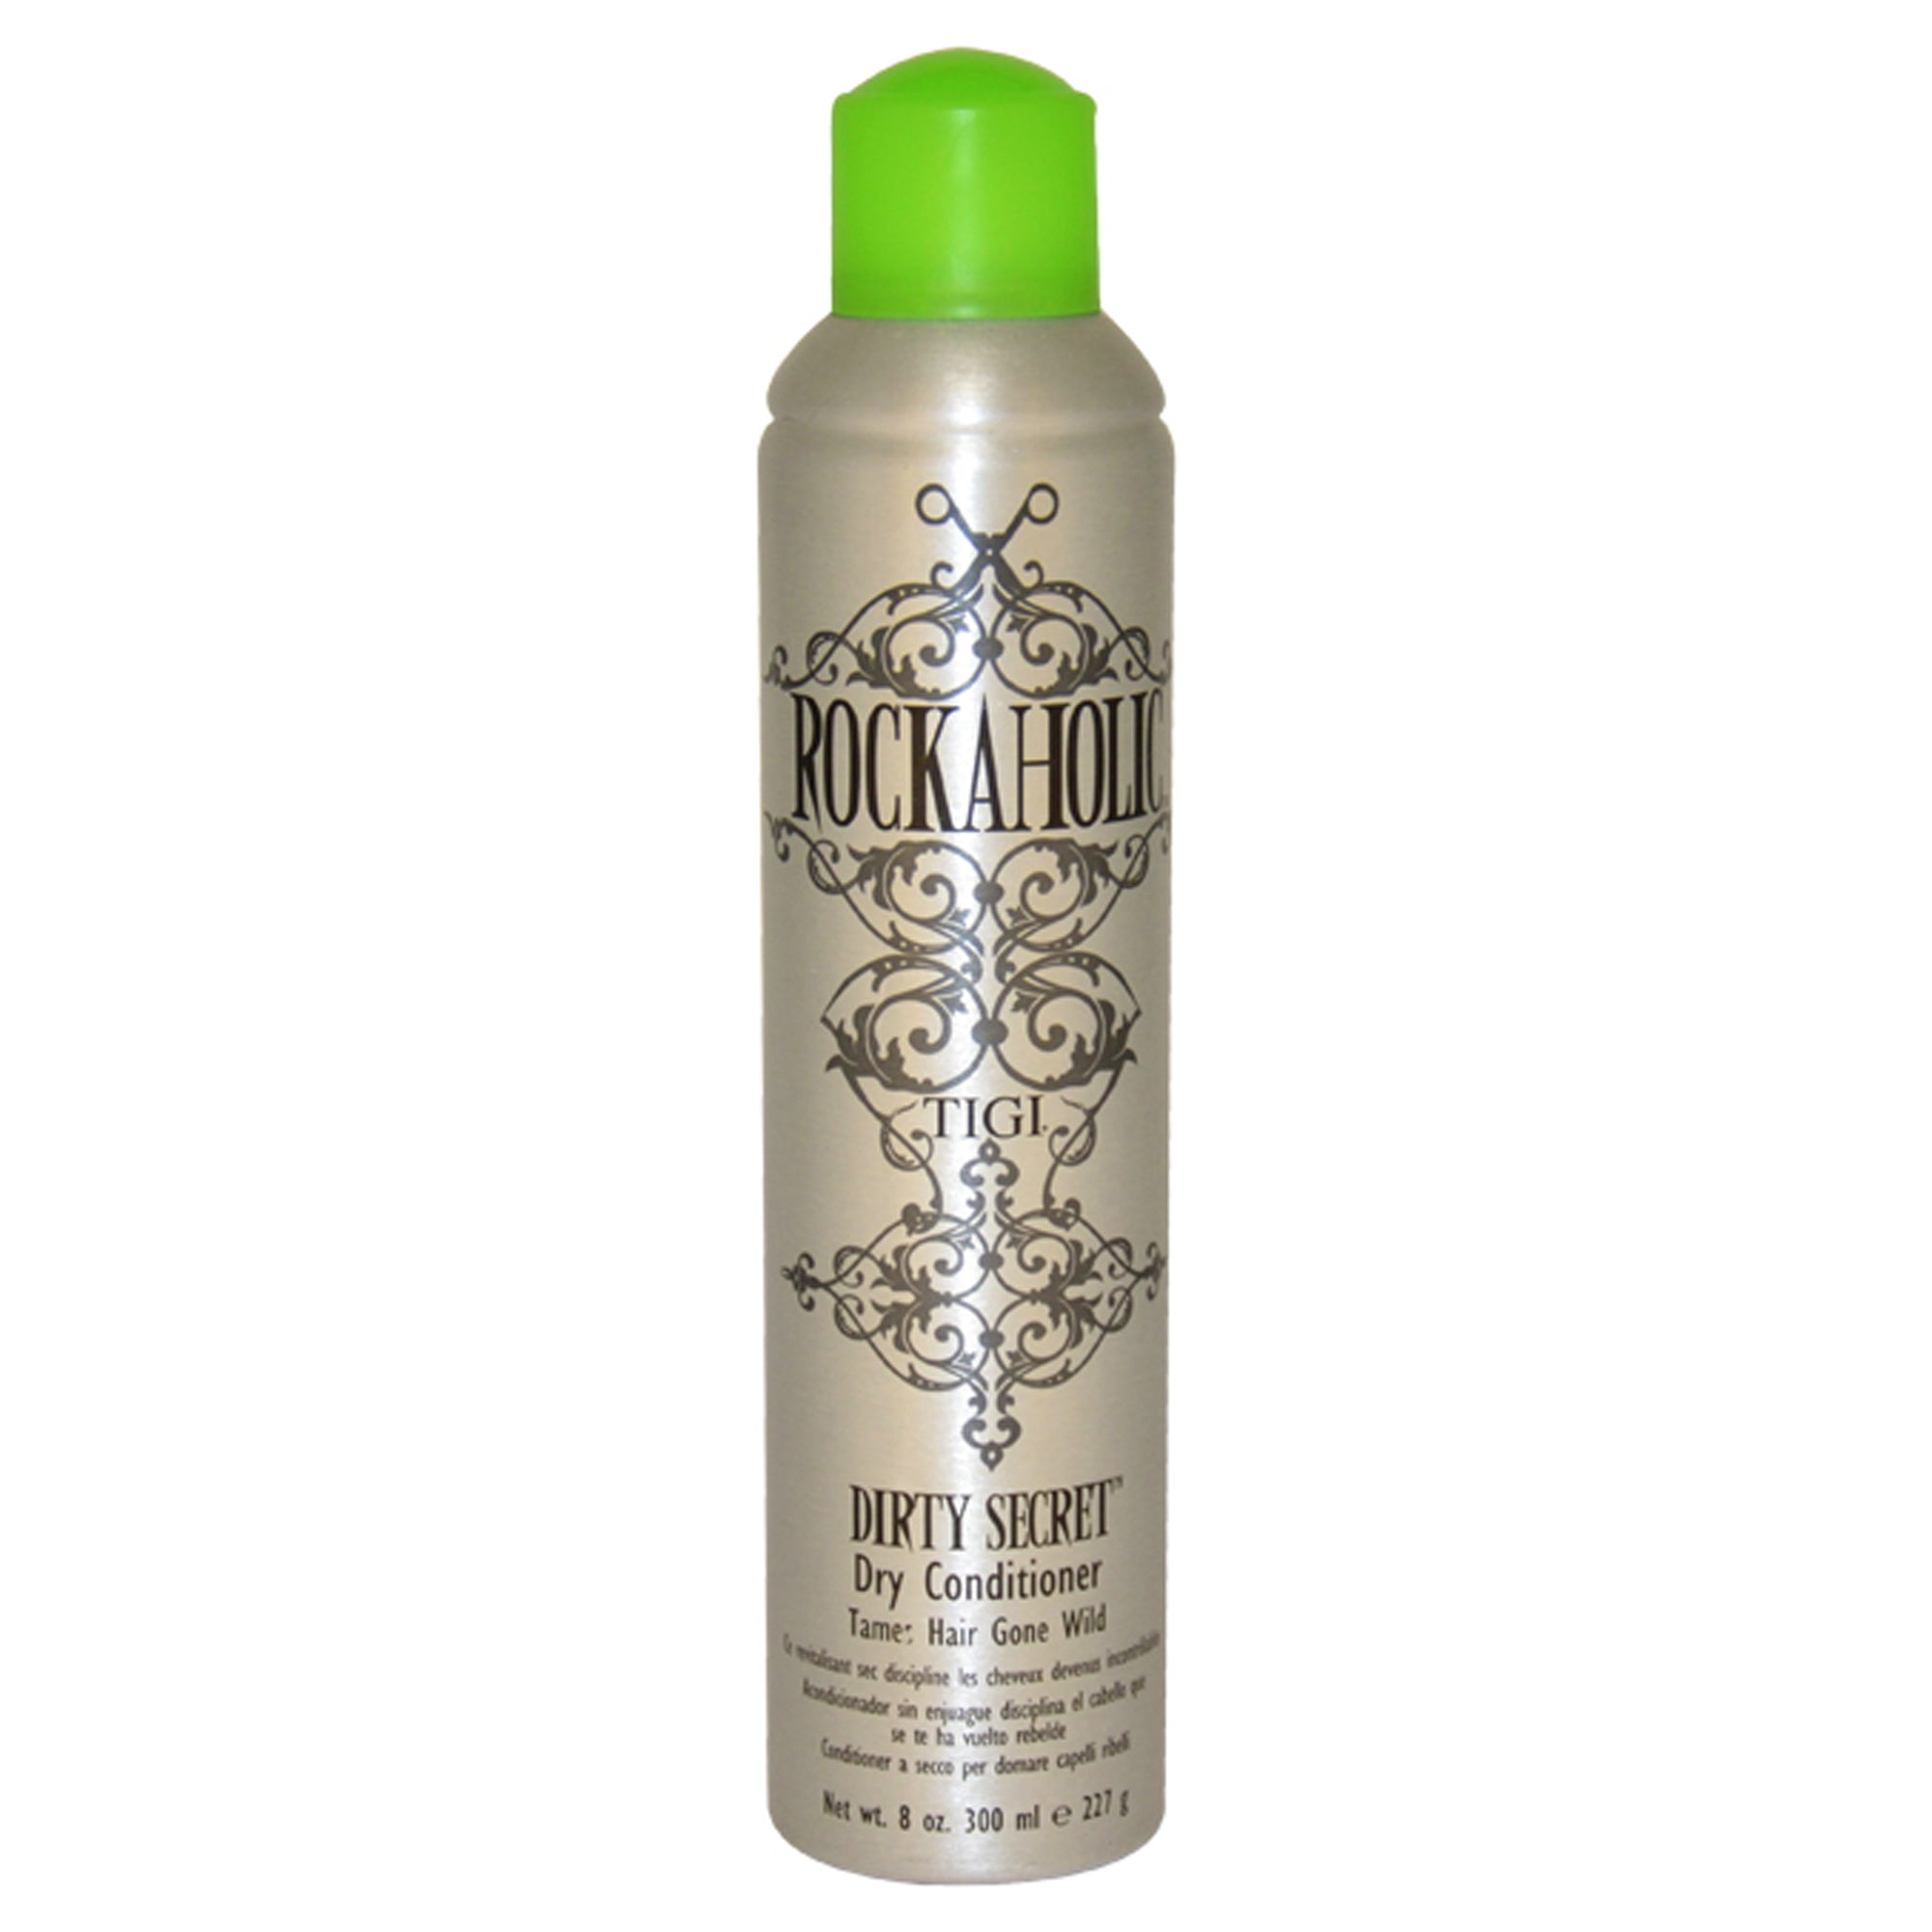 TIGI Rockaholic Dirty Secret Dry Conditioner